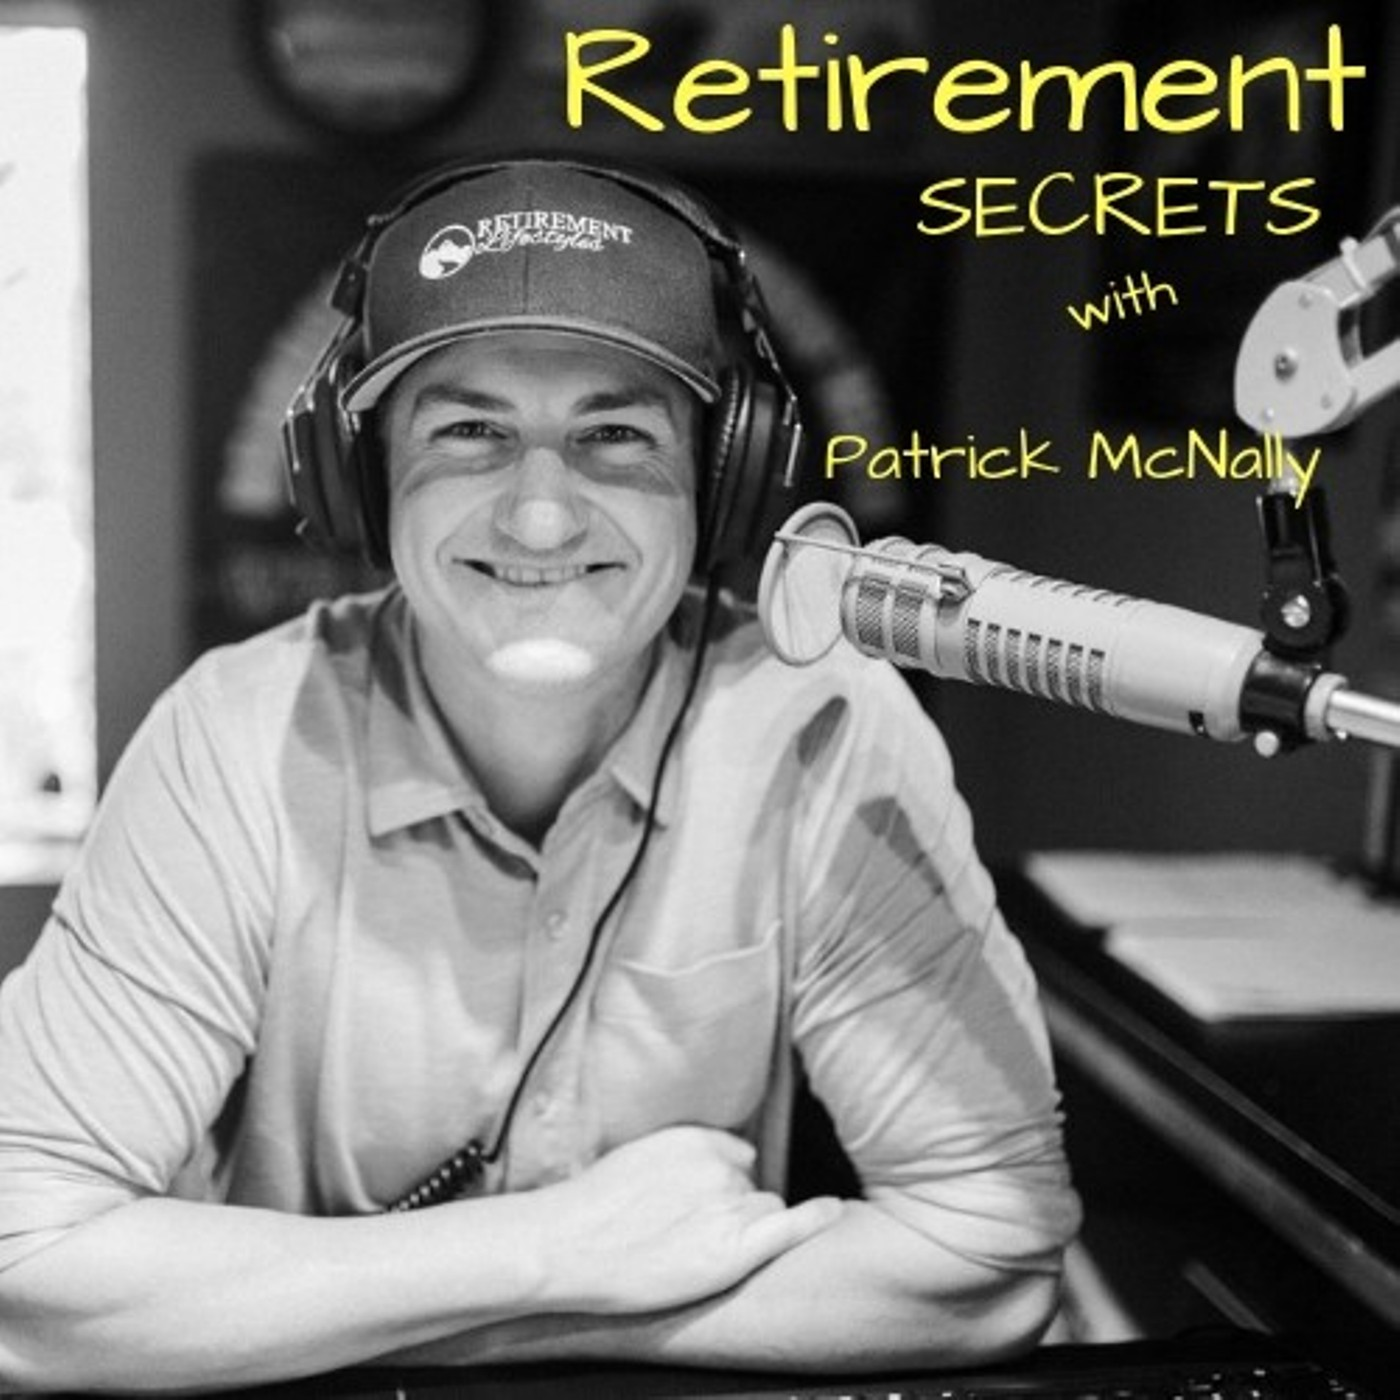 Retirement Secrets with Patrick McNally